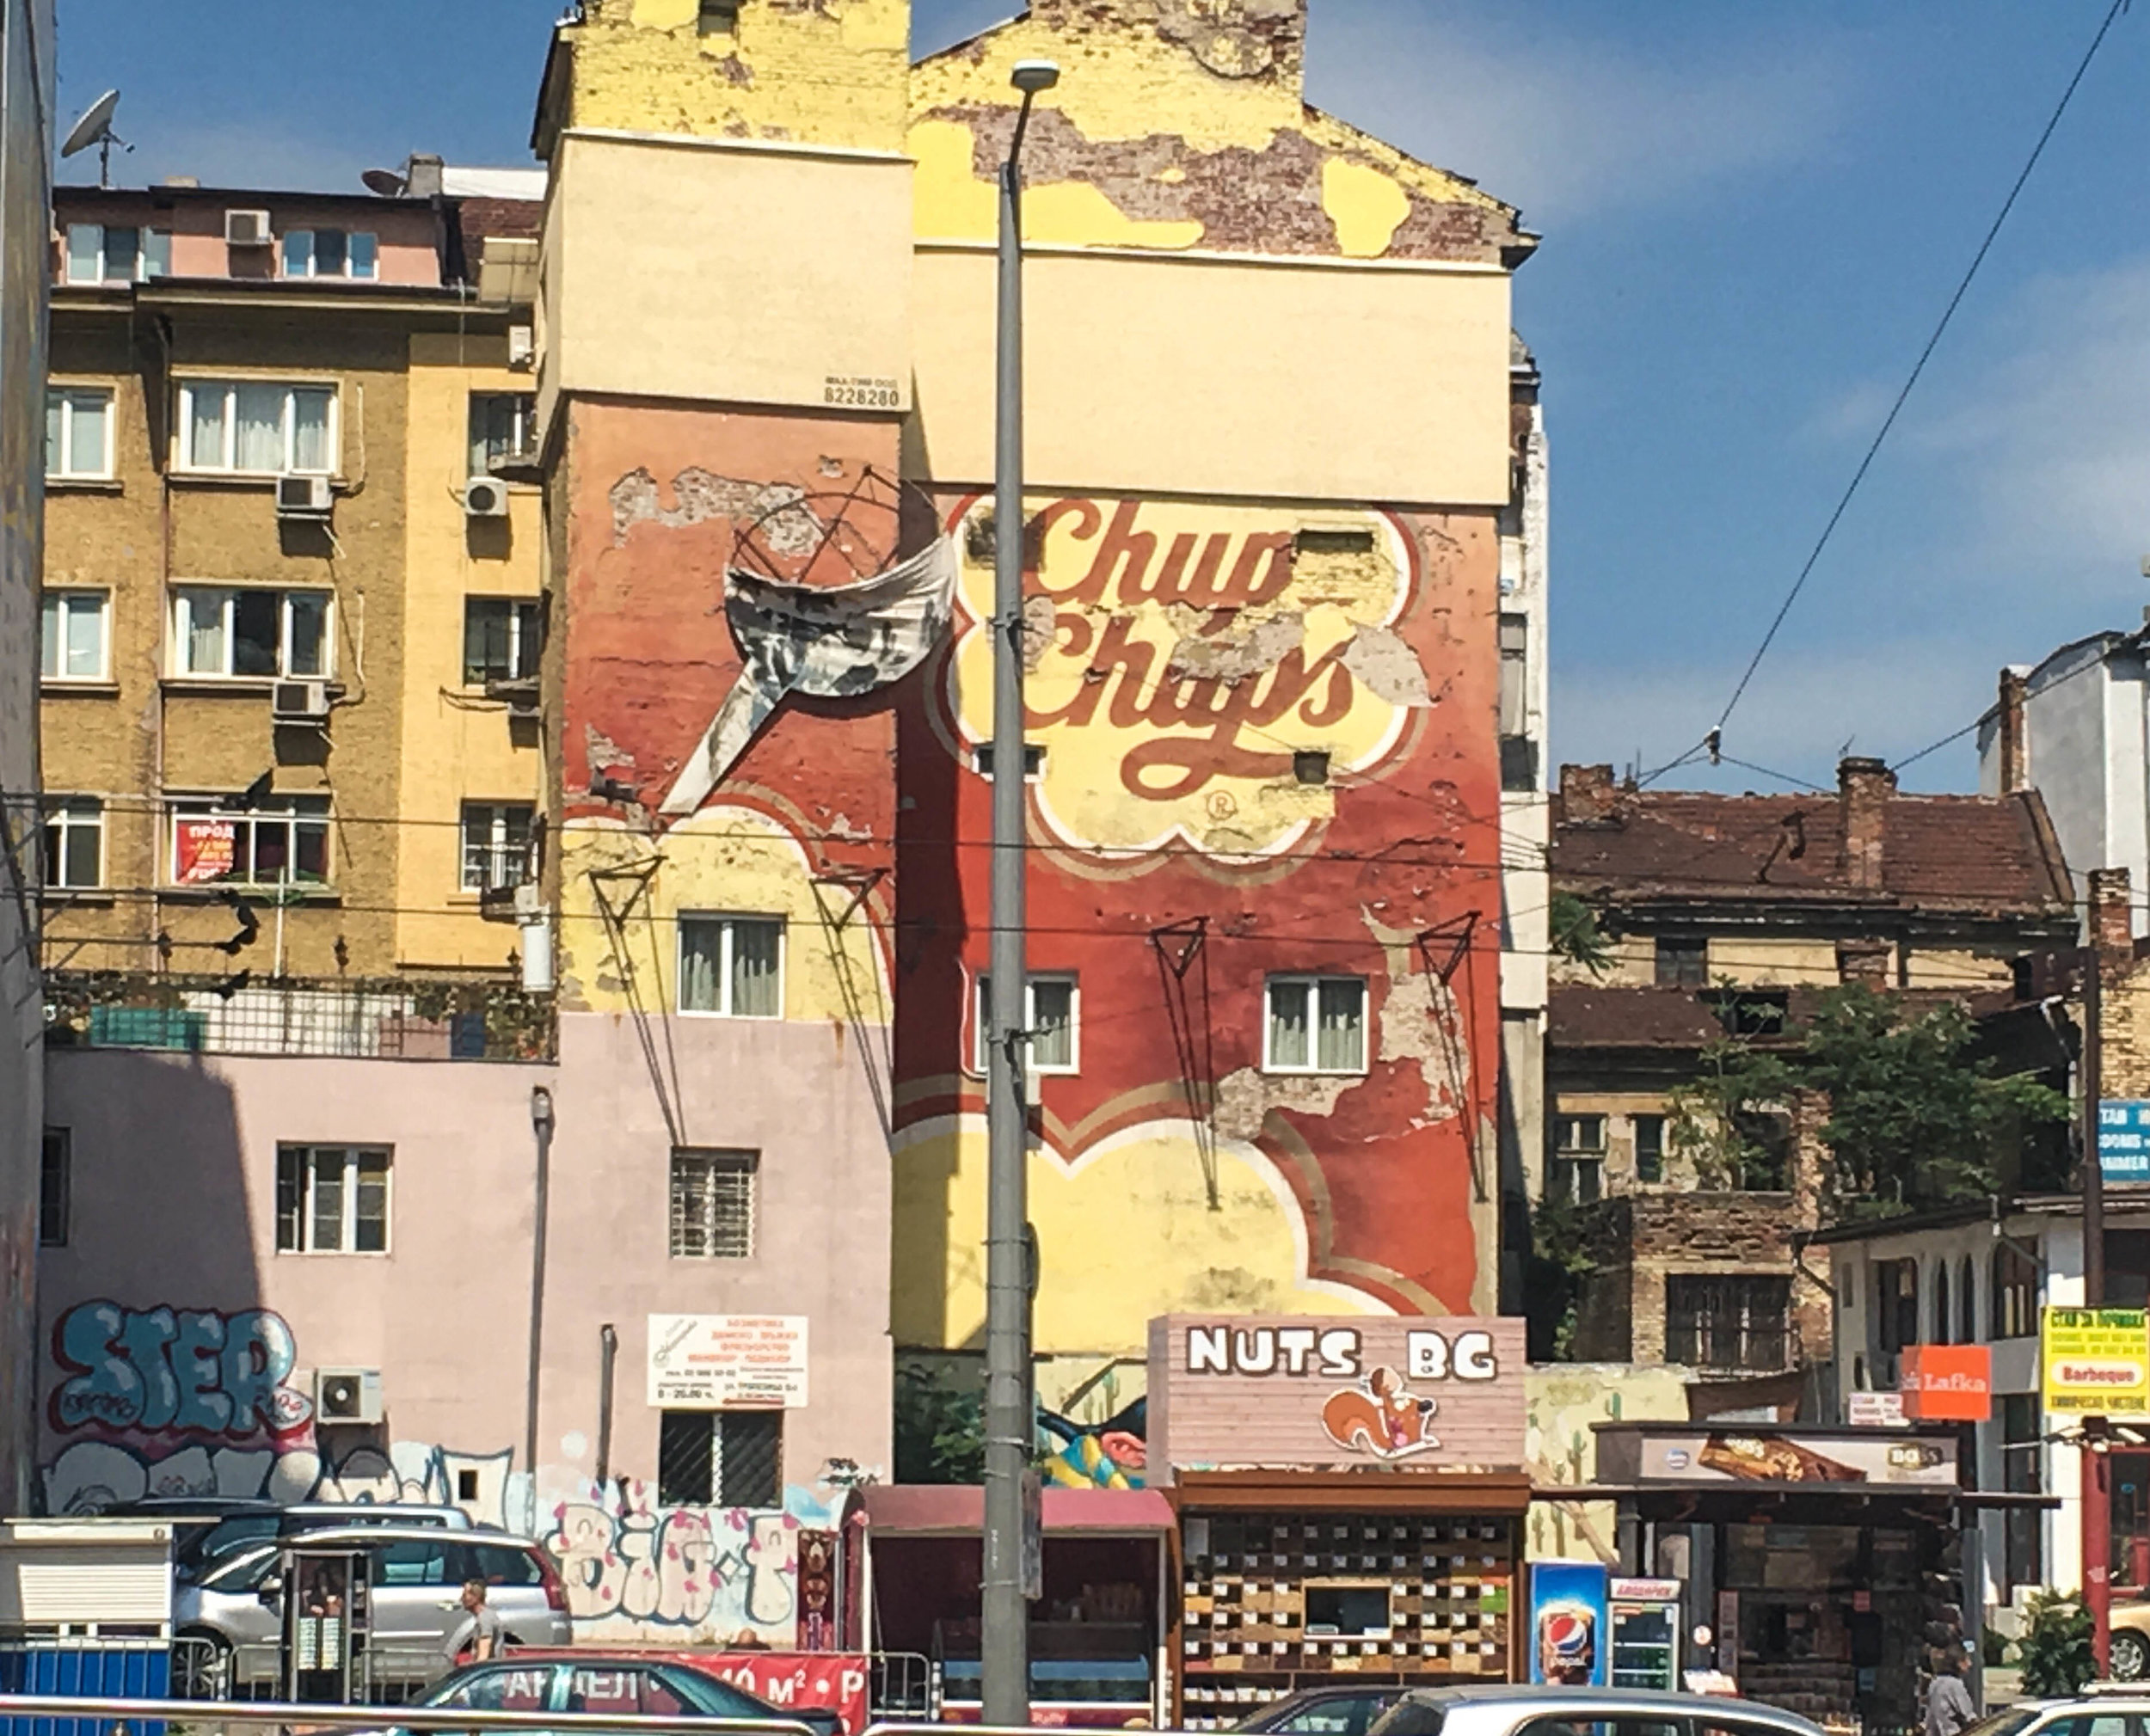 Sofia itinerary, Building in Sofia (Bulgaria) with a Chup Chups decaying mural and a nut stand.